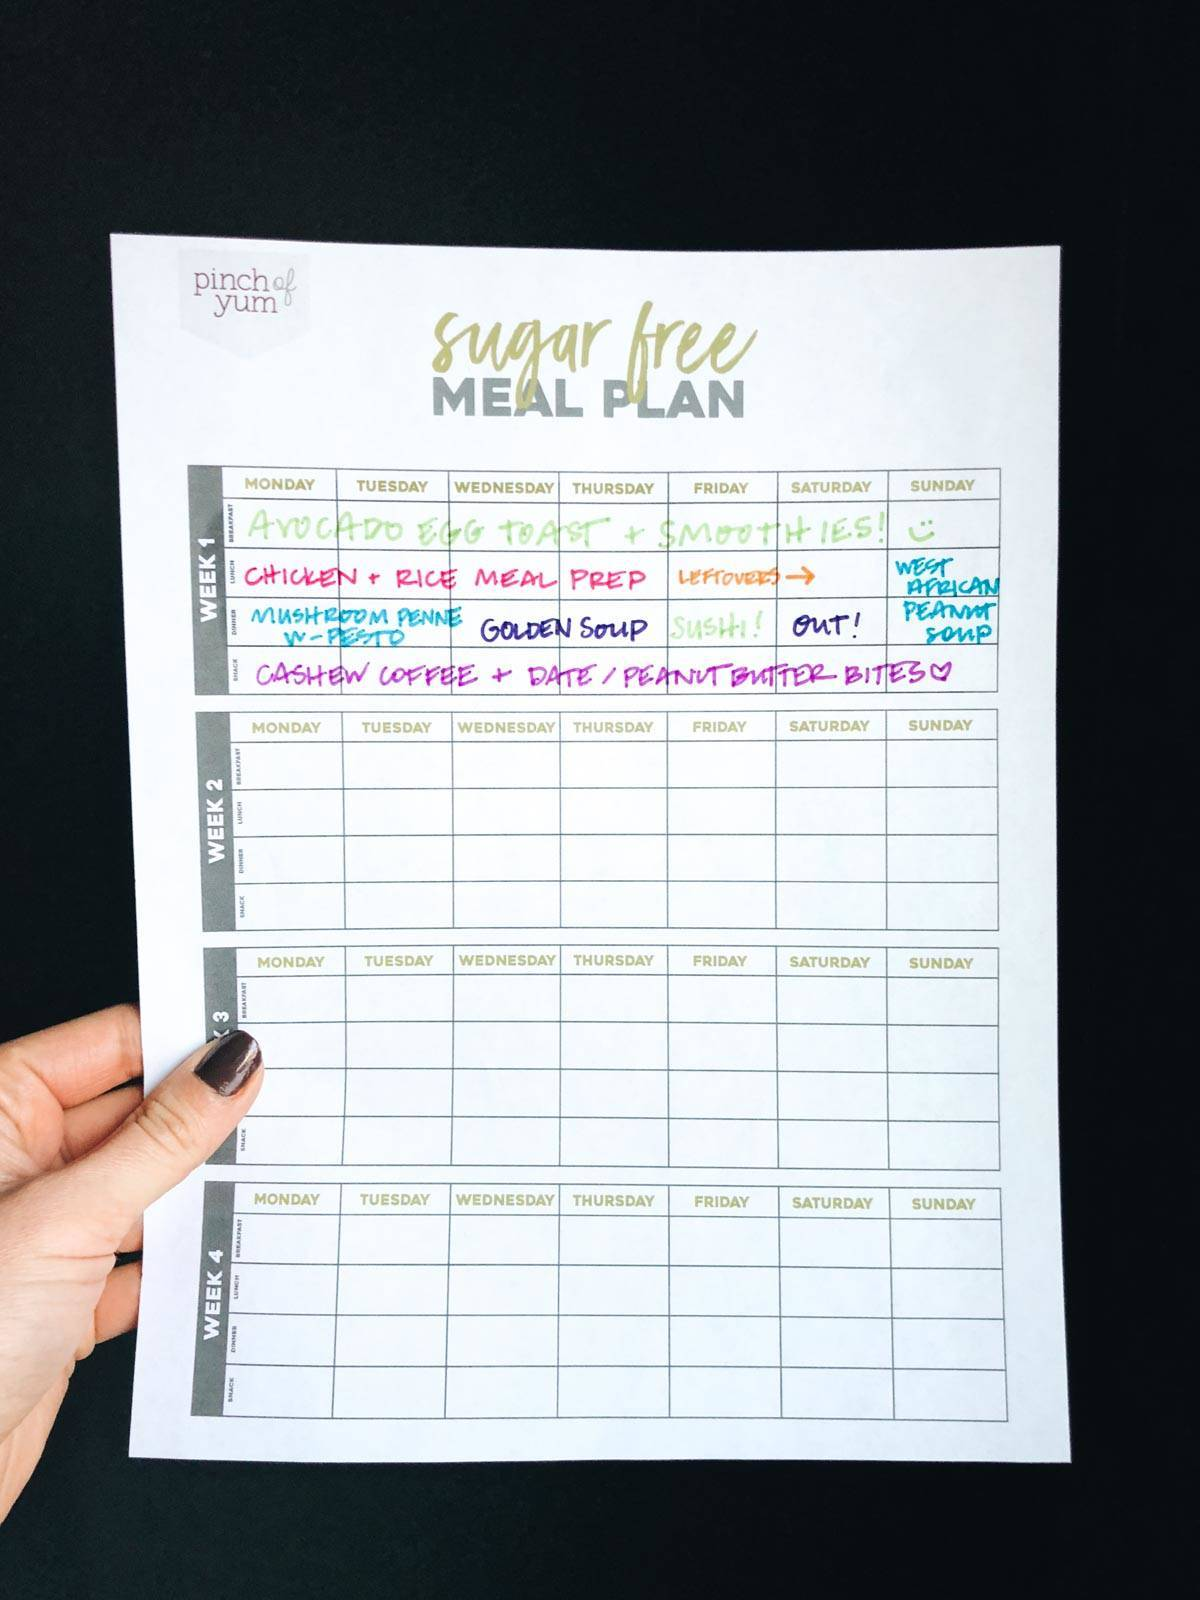 sugar free meal plan printable template